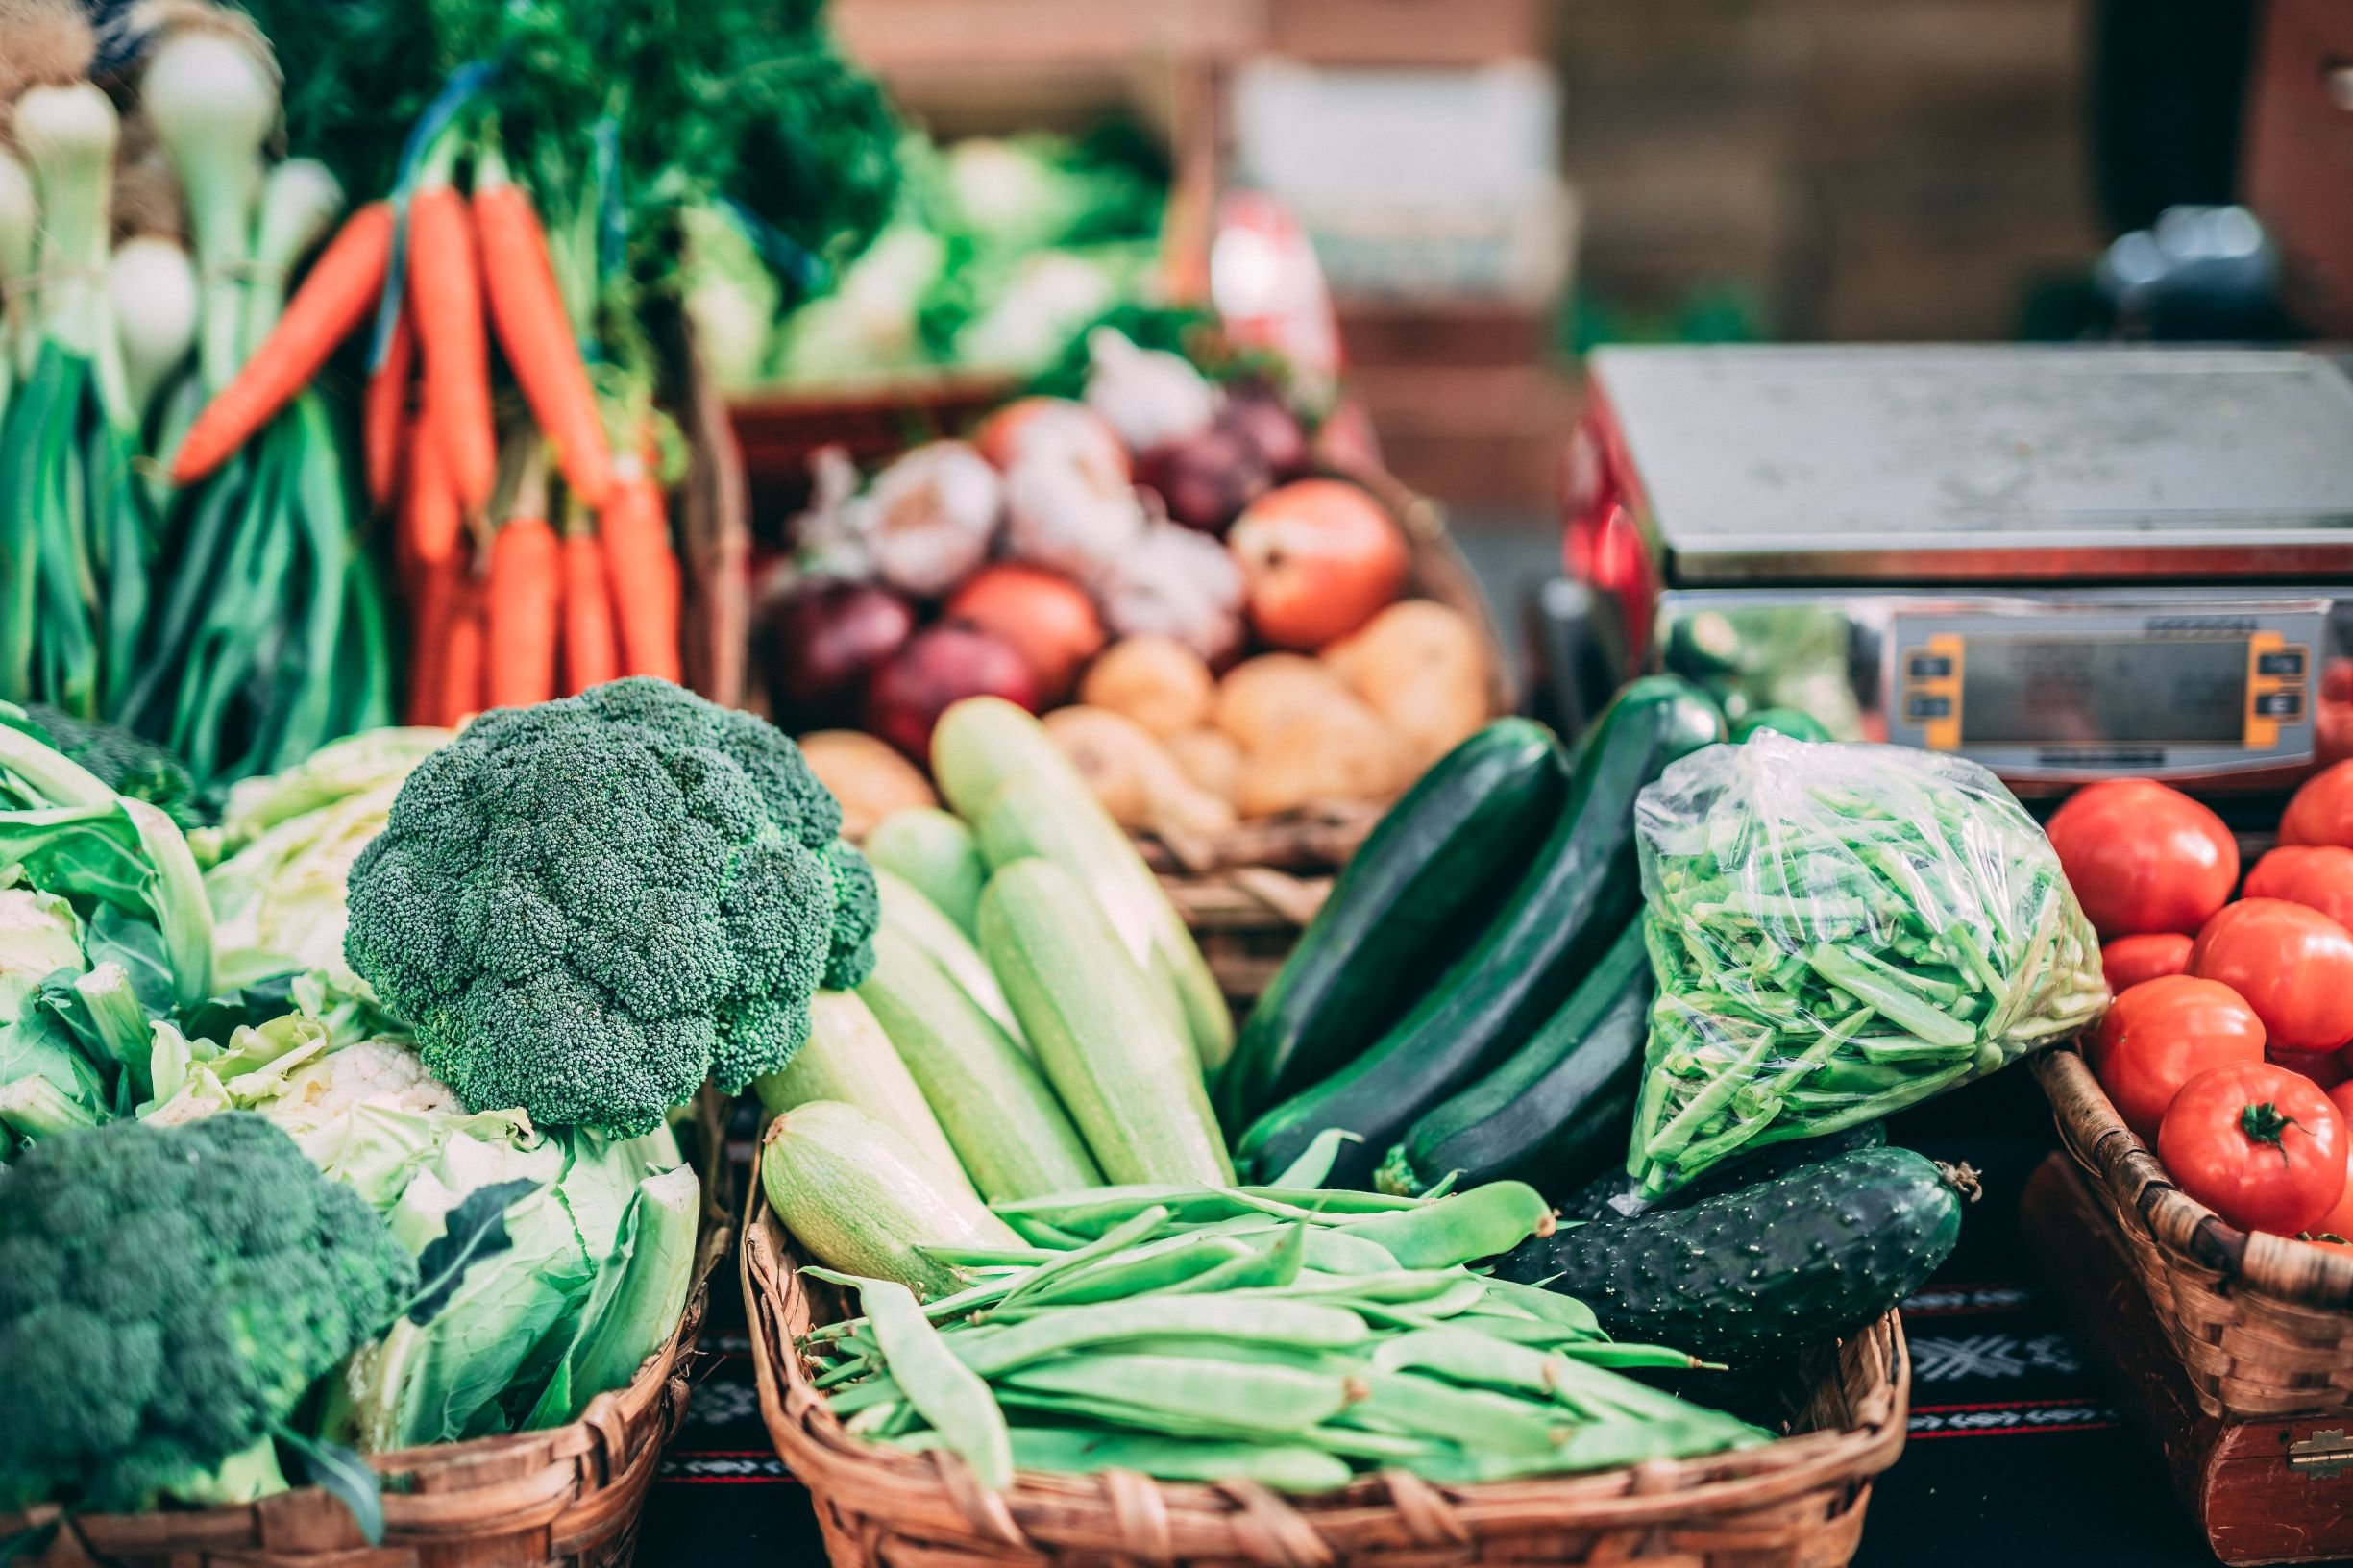 5 Tips on How to Eat More Vegetables